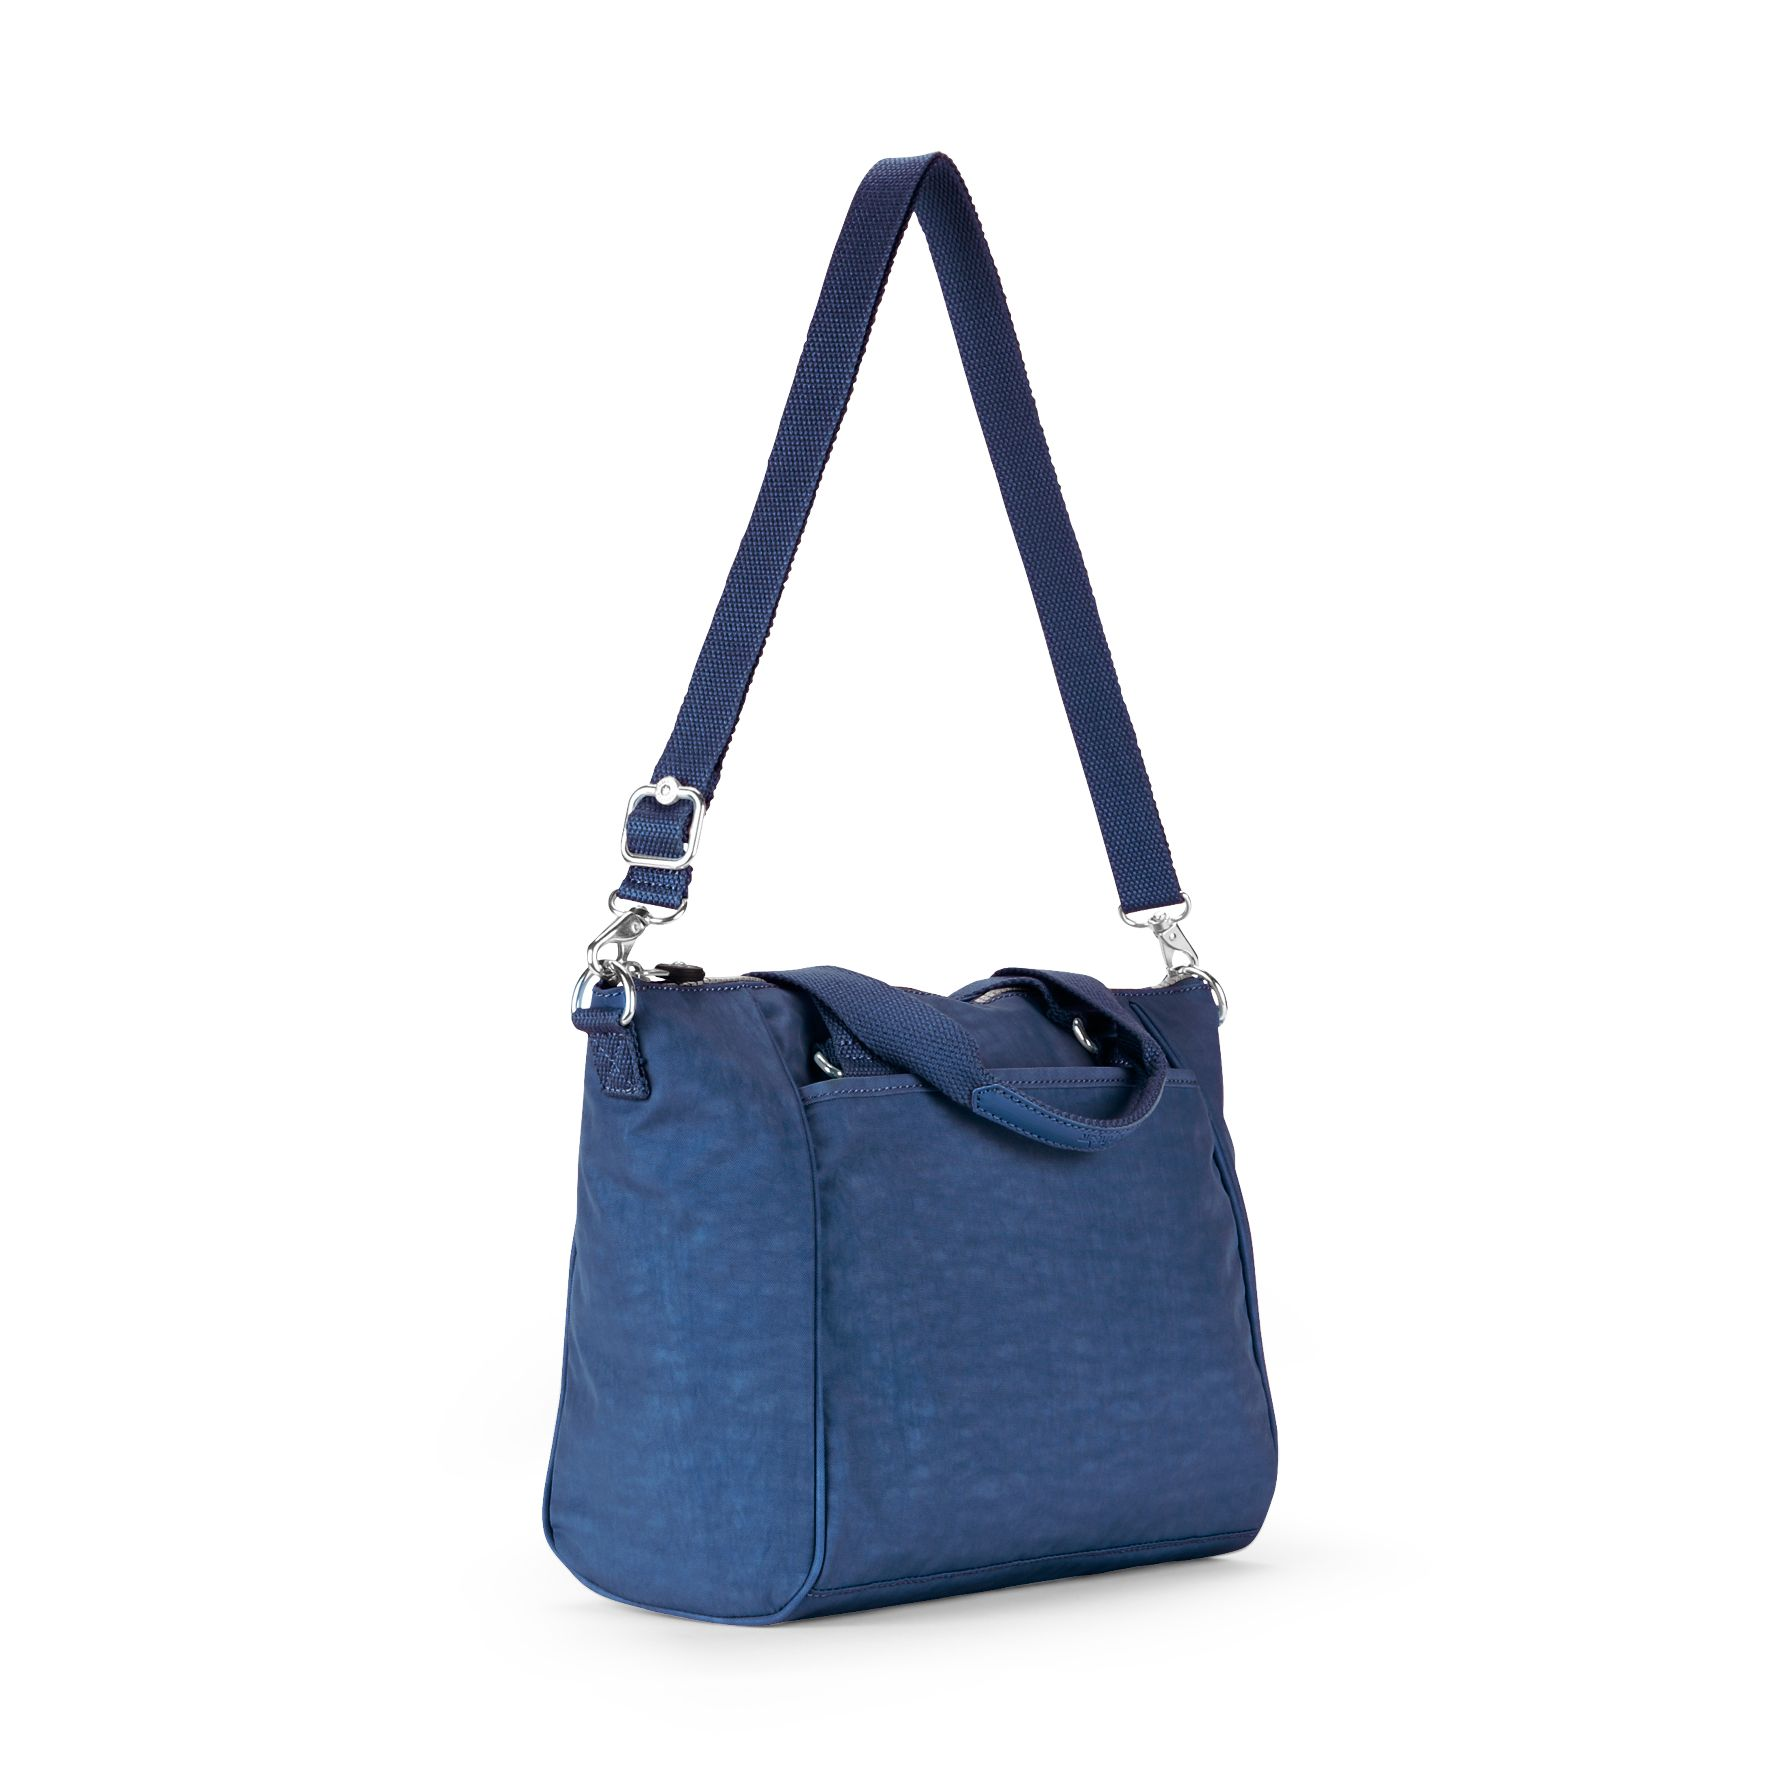 Amiel medium handbag